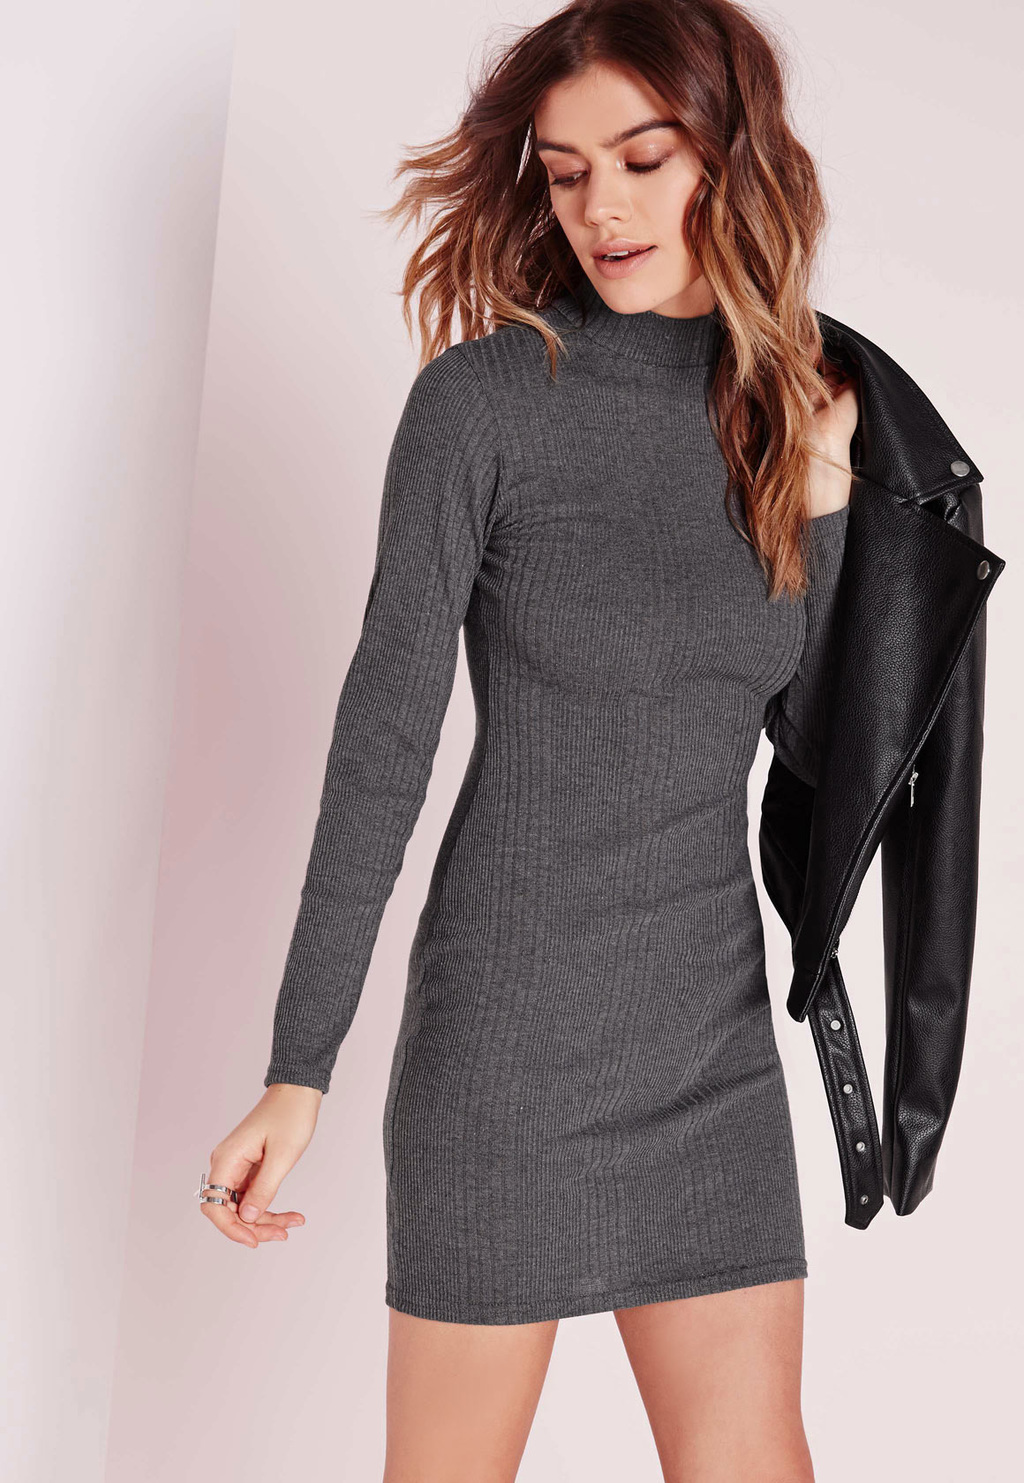 High Neck Long Sleeve Rib Bodycon Dress Grey Marl, Grey - length: mini; fit: tight; neckline: high neck; style: bodycon; hip detail: fitted at hip; predominant colour: charcoal; occasions: casual, creative work; fibres: polyester/polyamide - stretch; sleeve length: long sleeve; sleeve style: standard; pattern type: fabric; texture group: jersey - stretchy/drapey; pattern: marl; season: s/s 2016